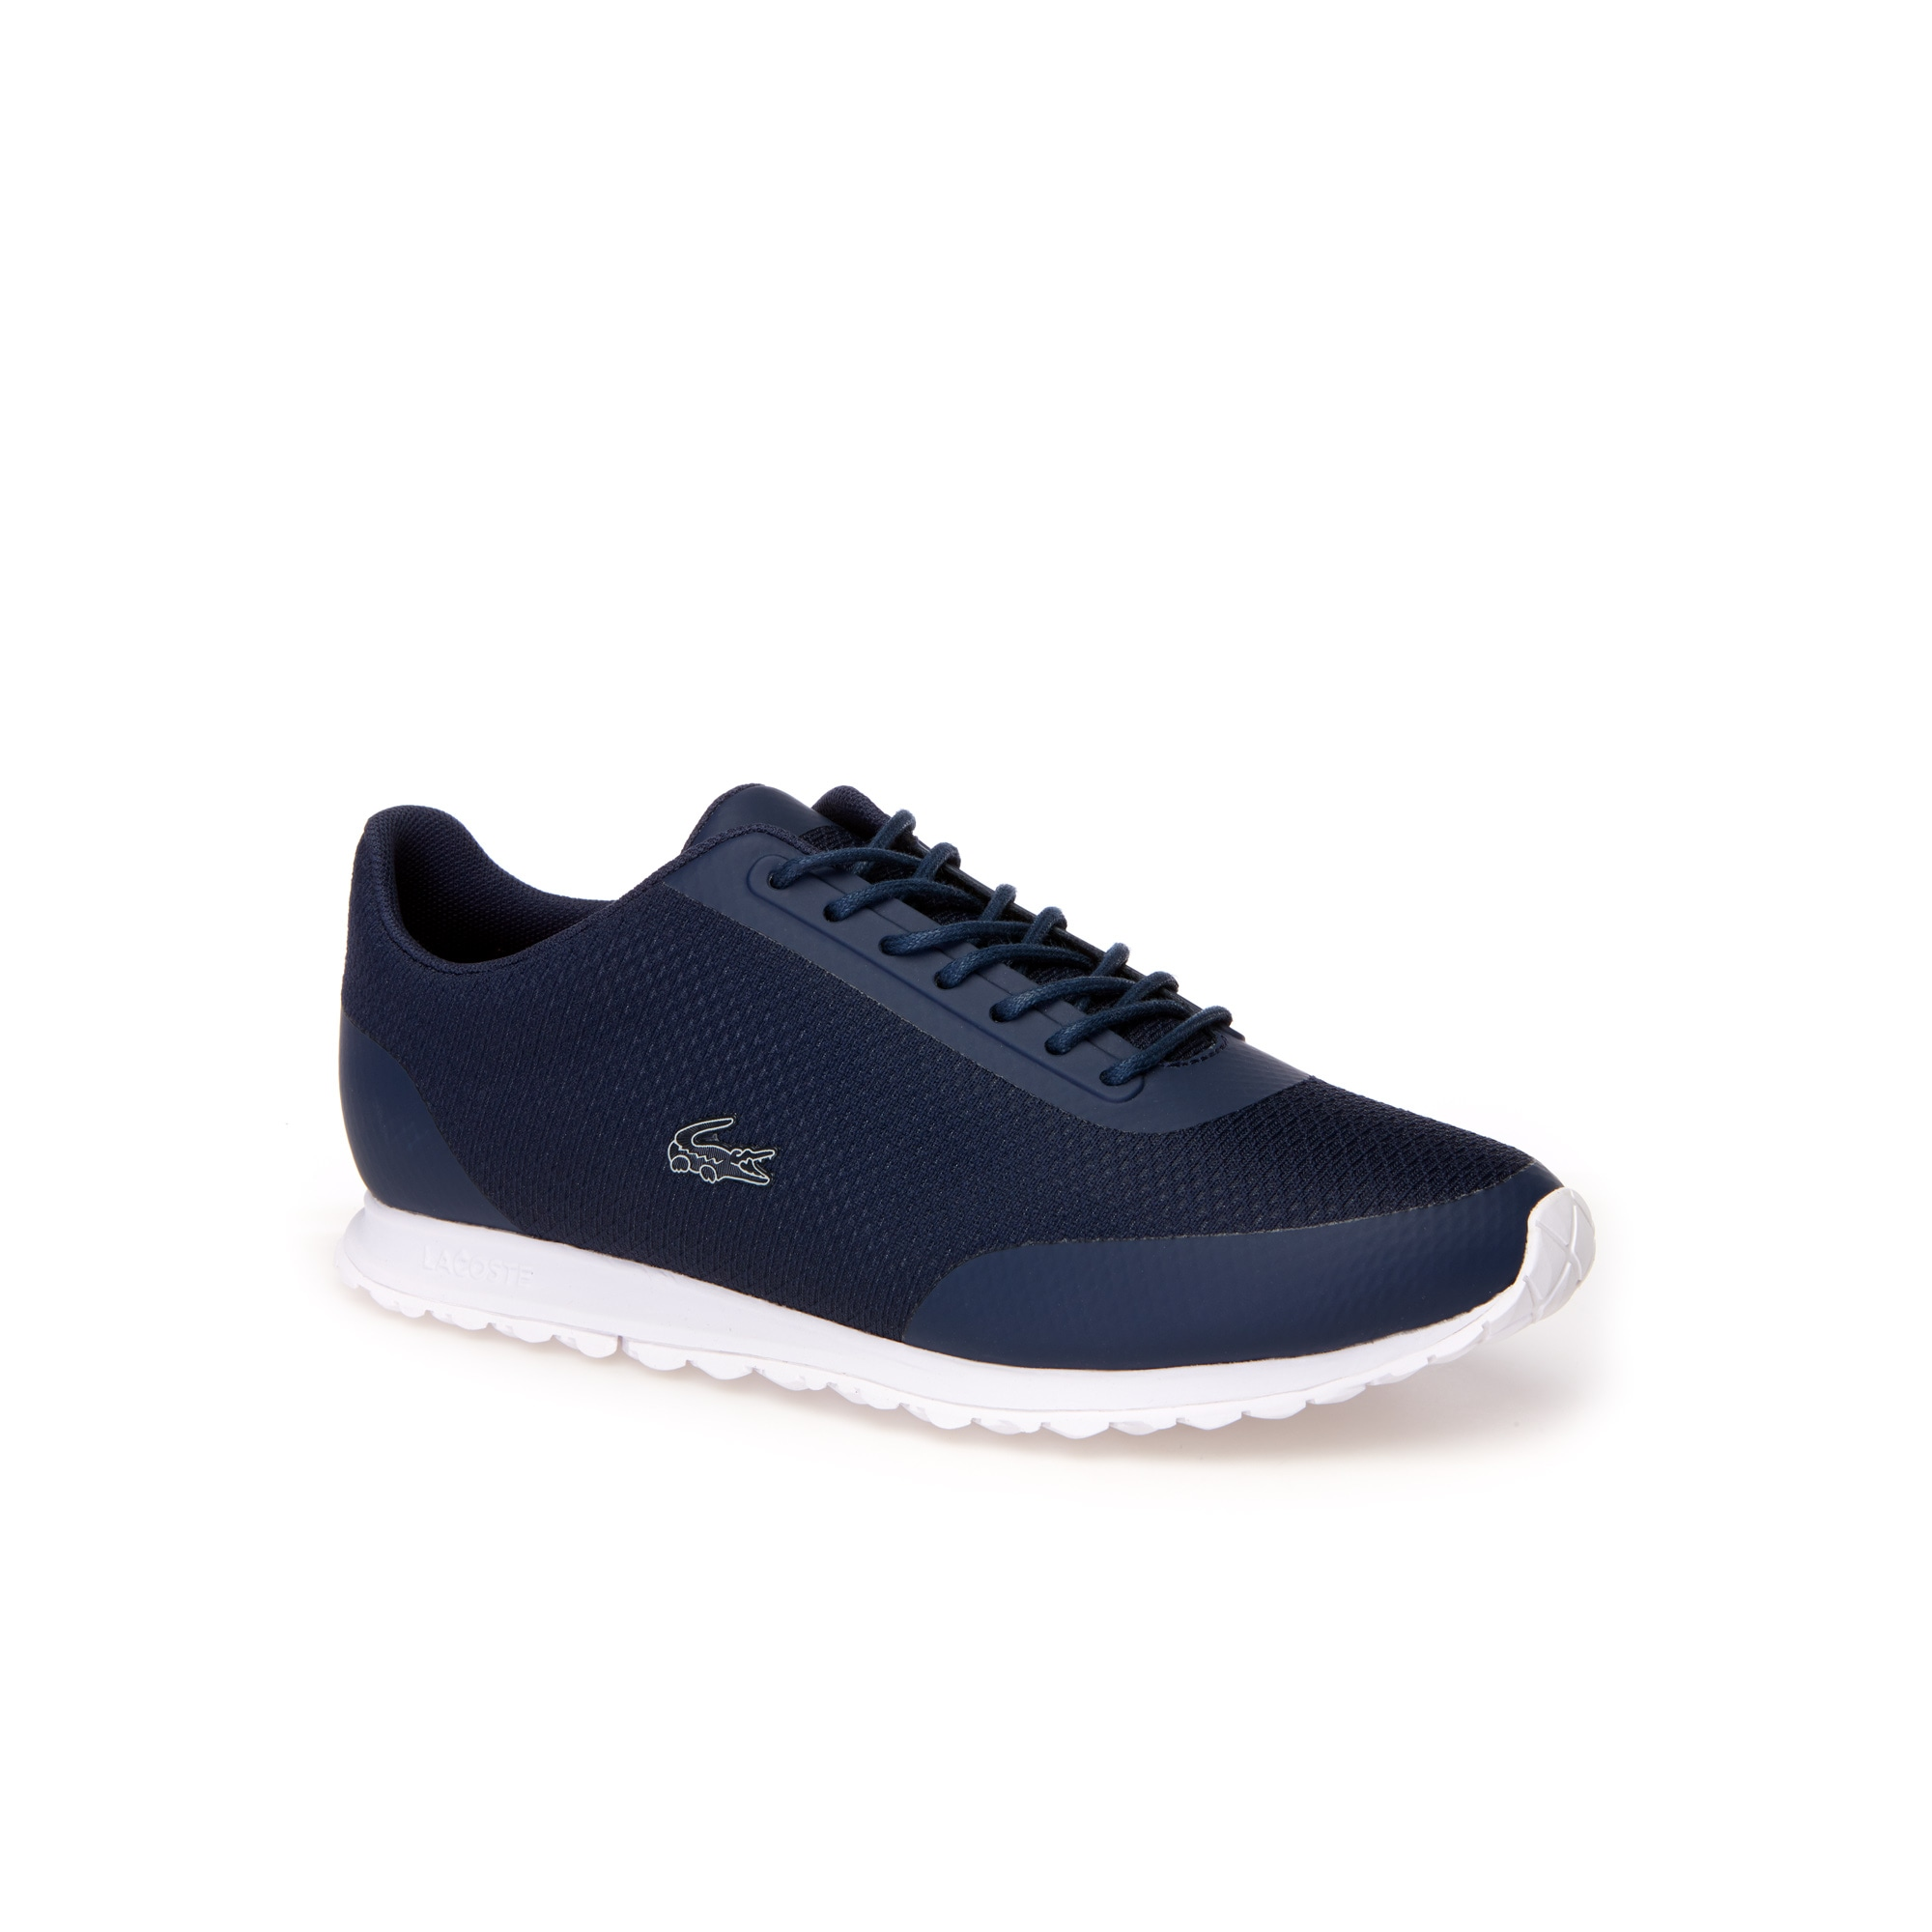 Women's Helaine Runner Textile Trainers